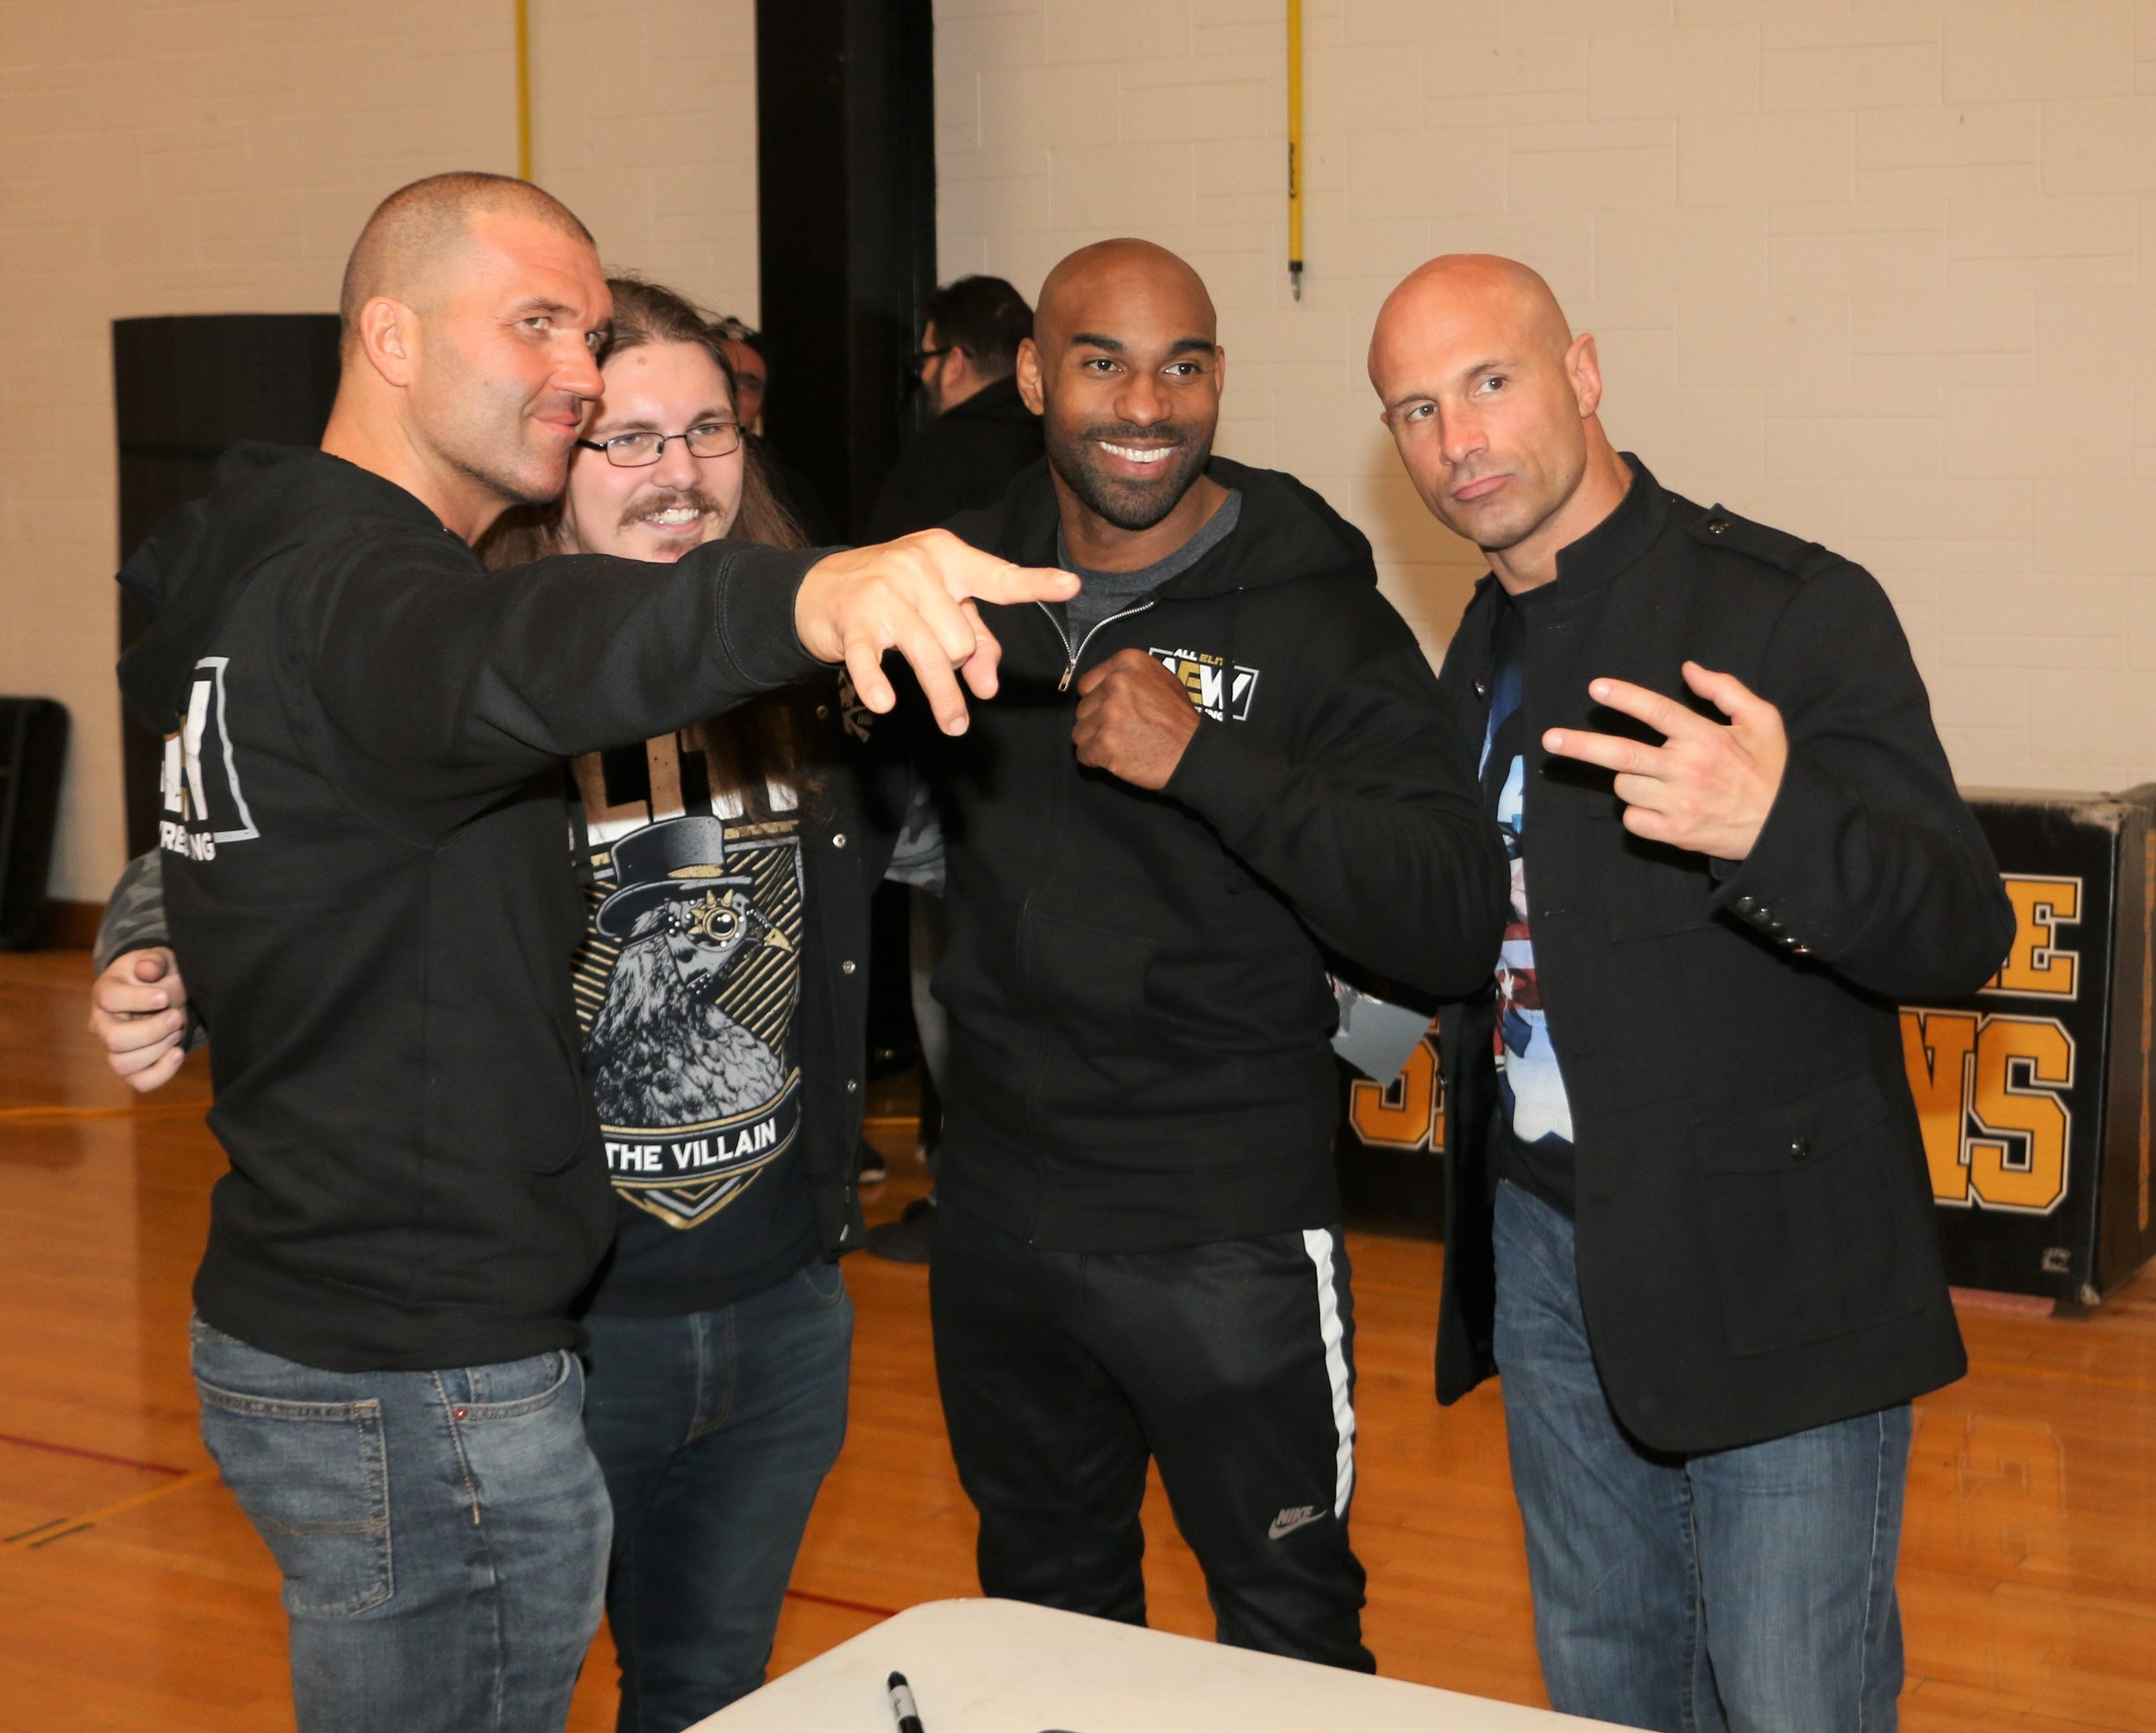 Frankie Kazarian (from left), a fan, Scorpio Sky and Christopher Daniels pose for a photo during the Warrior Wrestling 4 VIP Fan Fest on March 14, 2019. So Cal Uncensored formed in 2017 and have become one of the hottest attractions in pro wrestling.  (Photo by Mike Pankow)